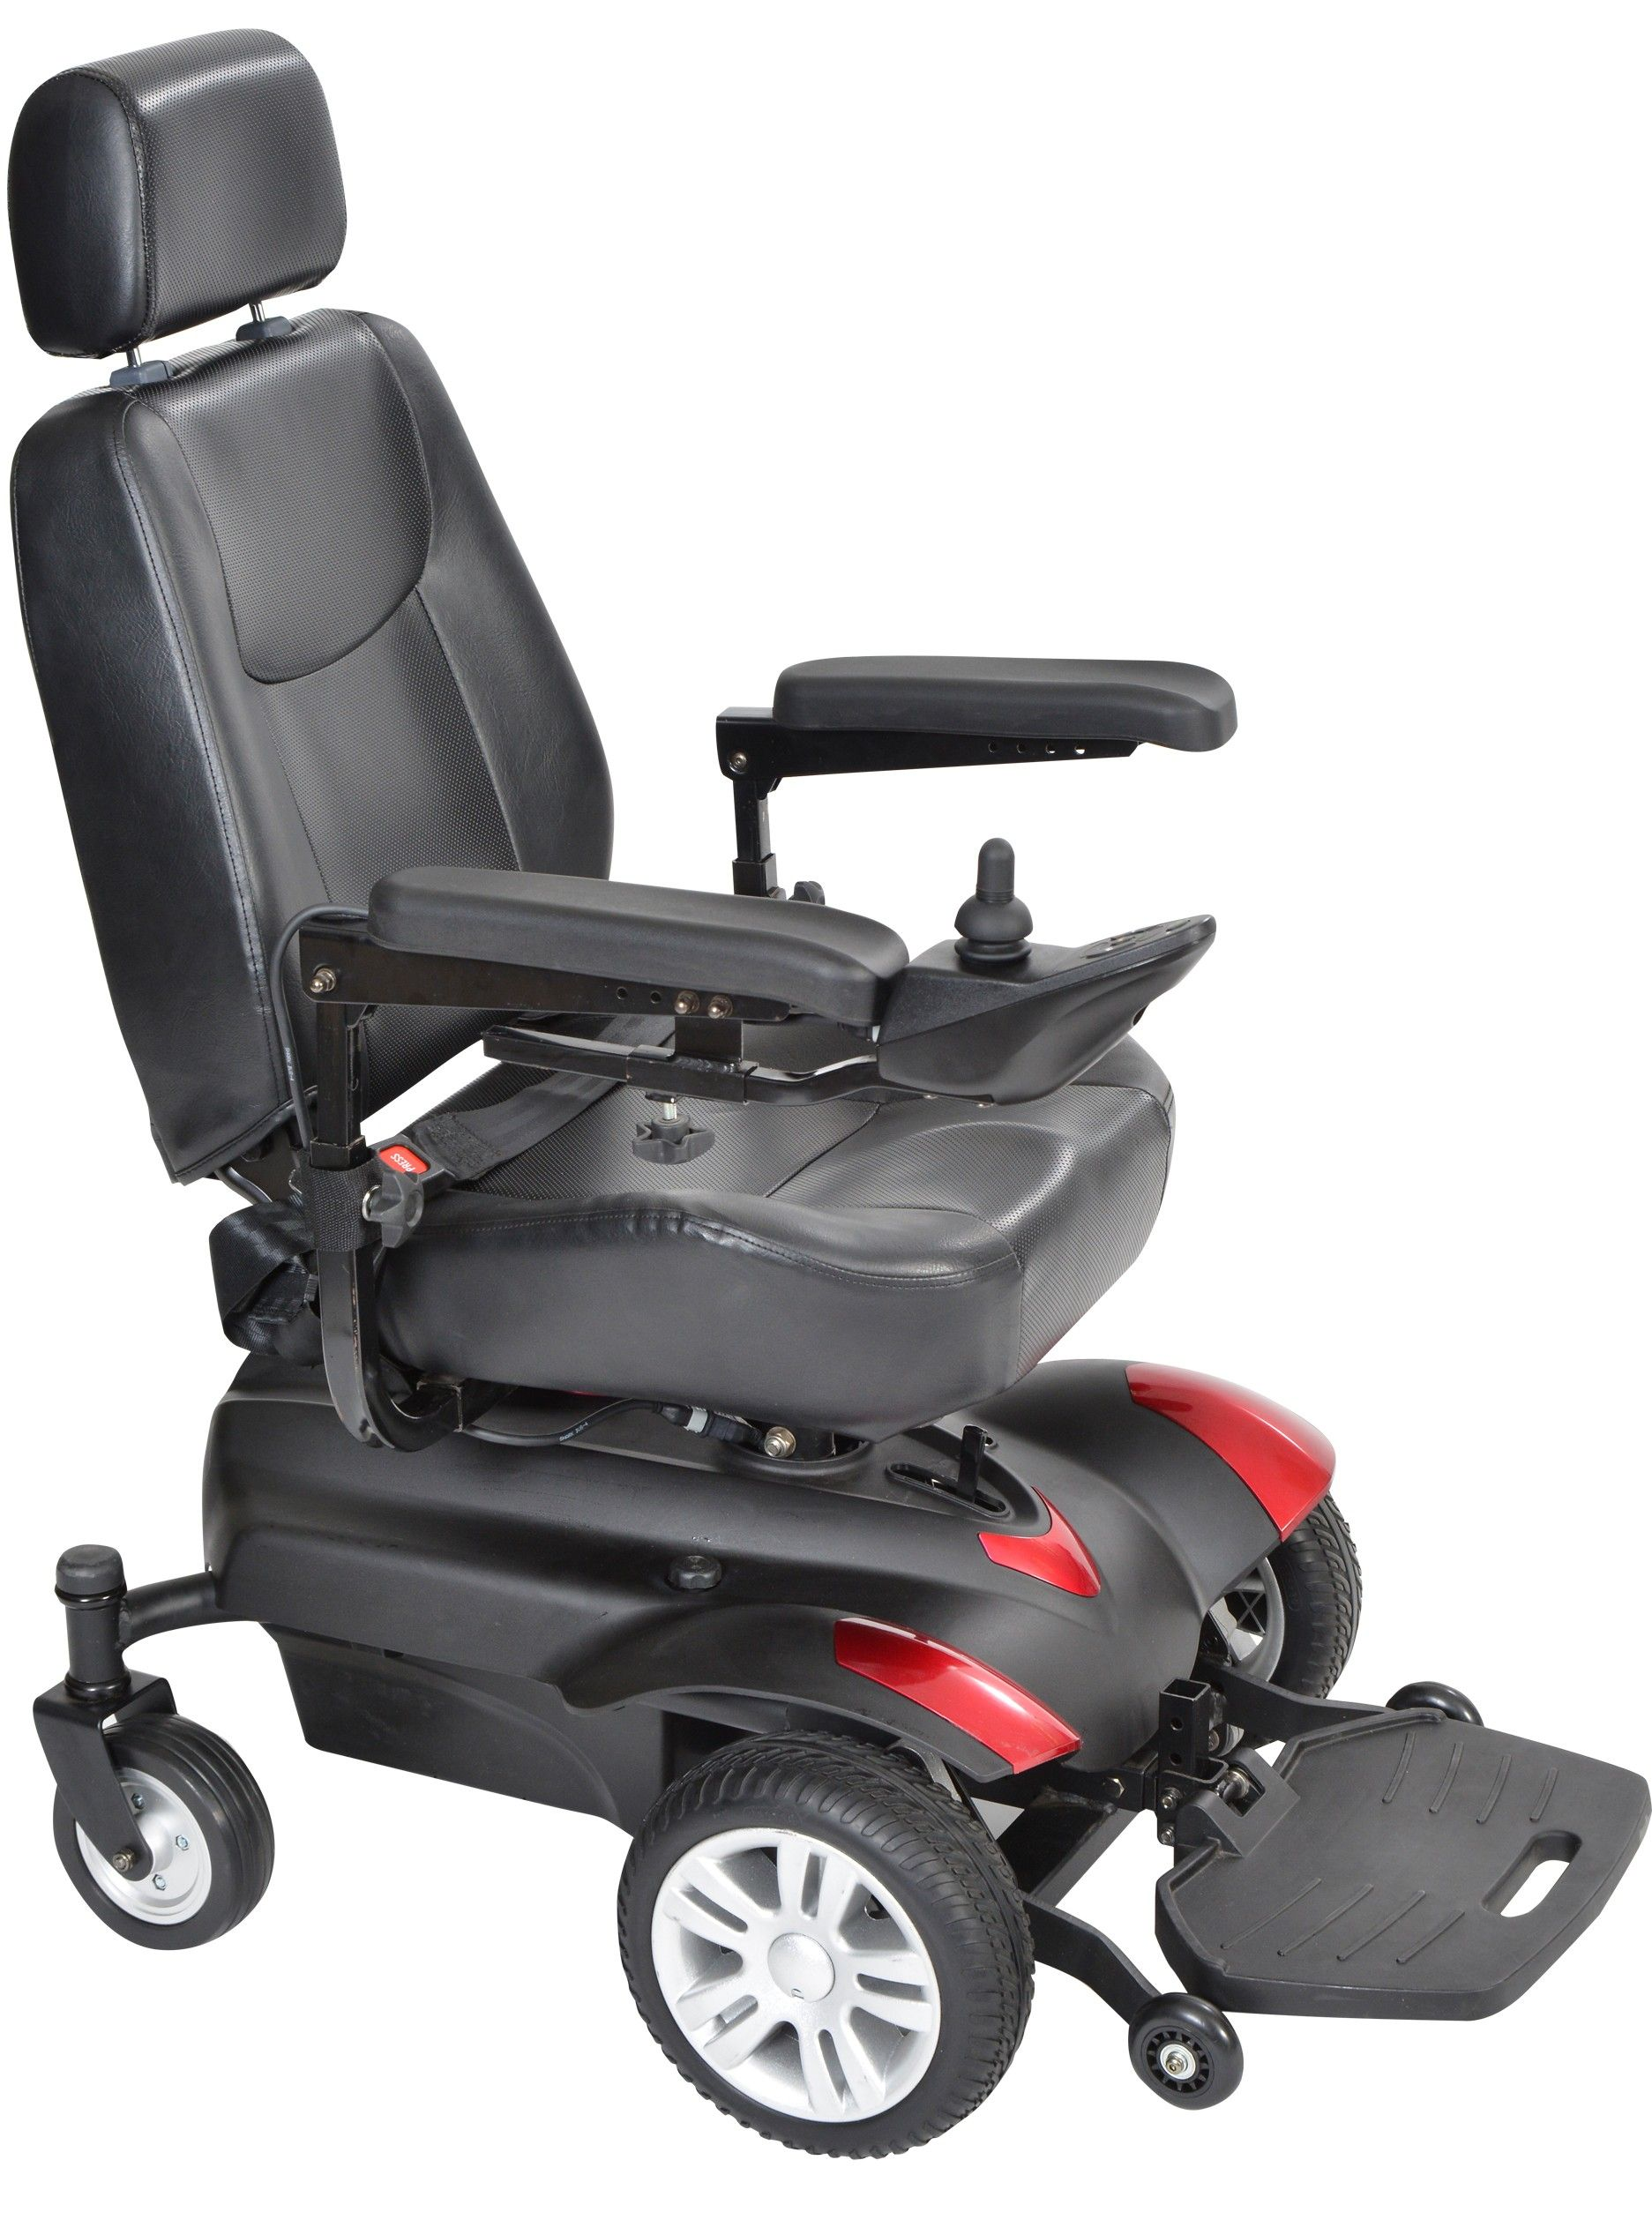 The Titan Power Wheelchair From Drive Medical Powered Wheelchair Power Mobility Electric Wheelchair